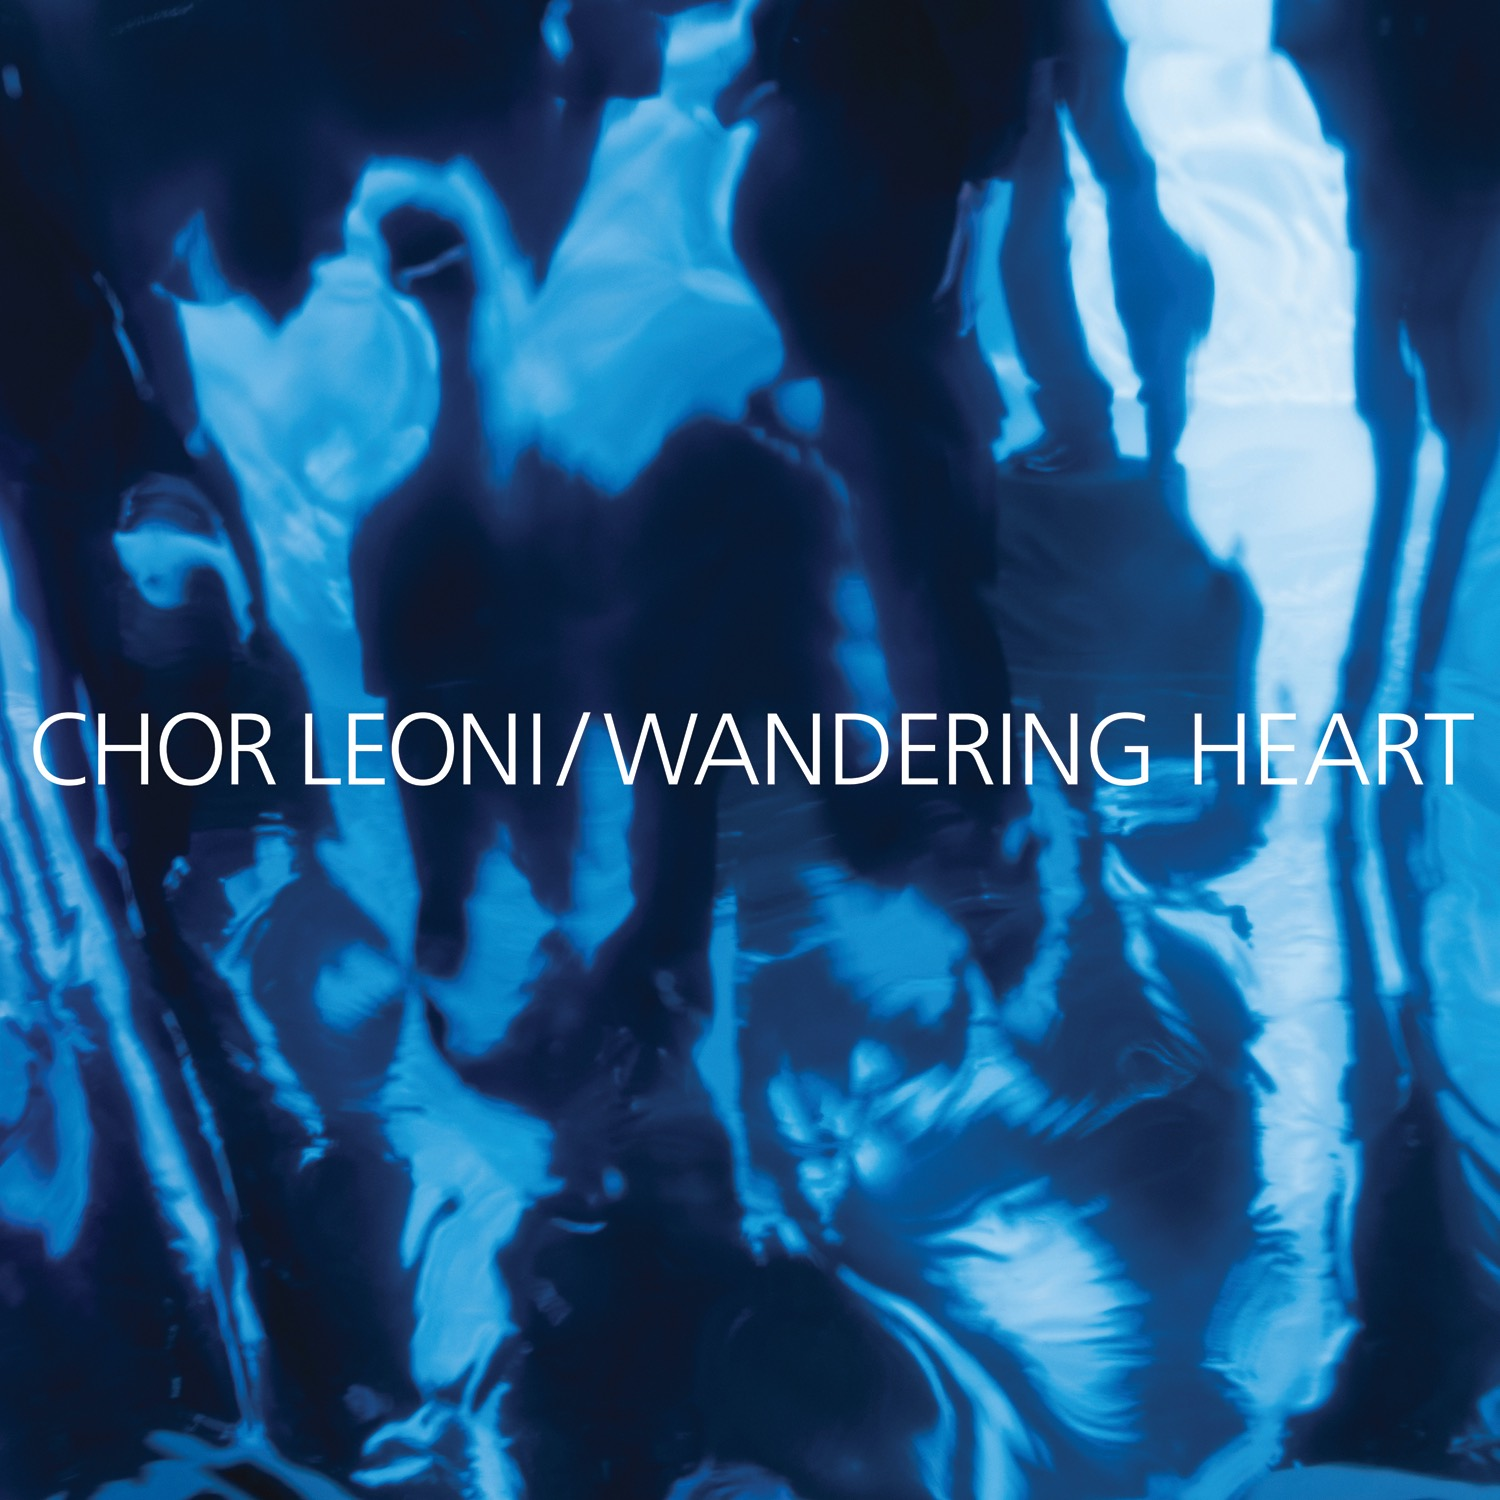 Wandering Heart CD cover